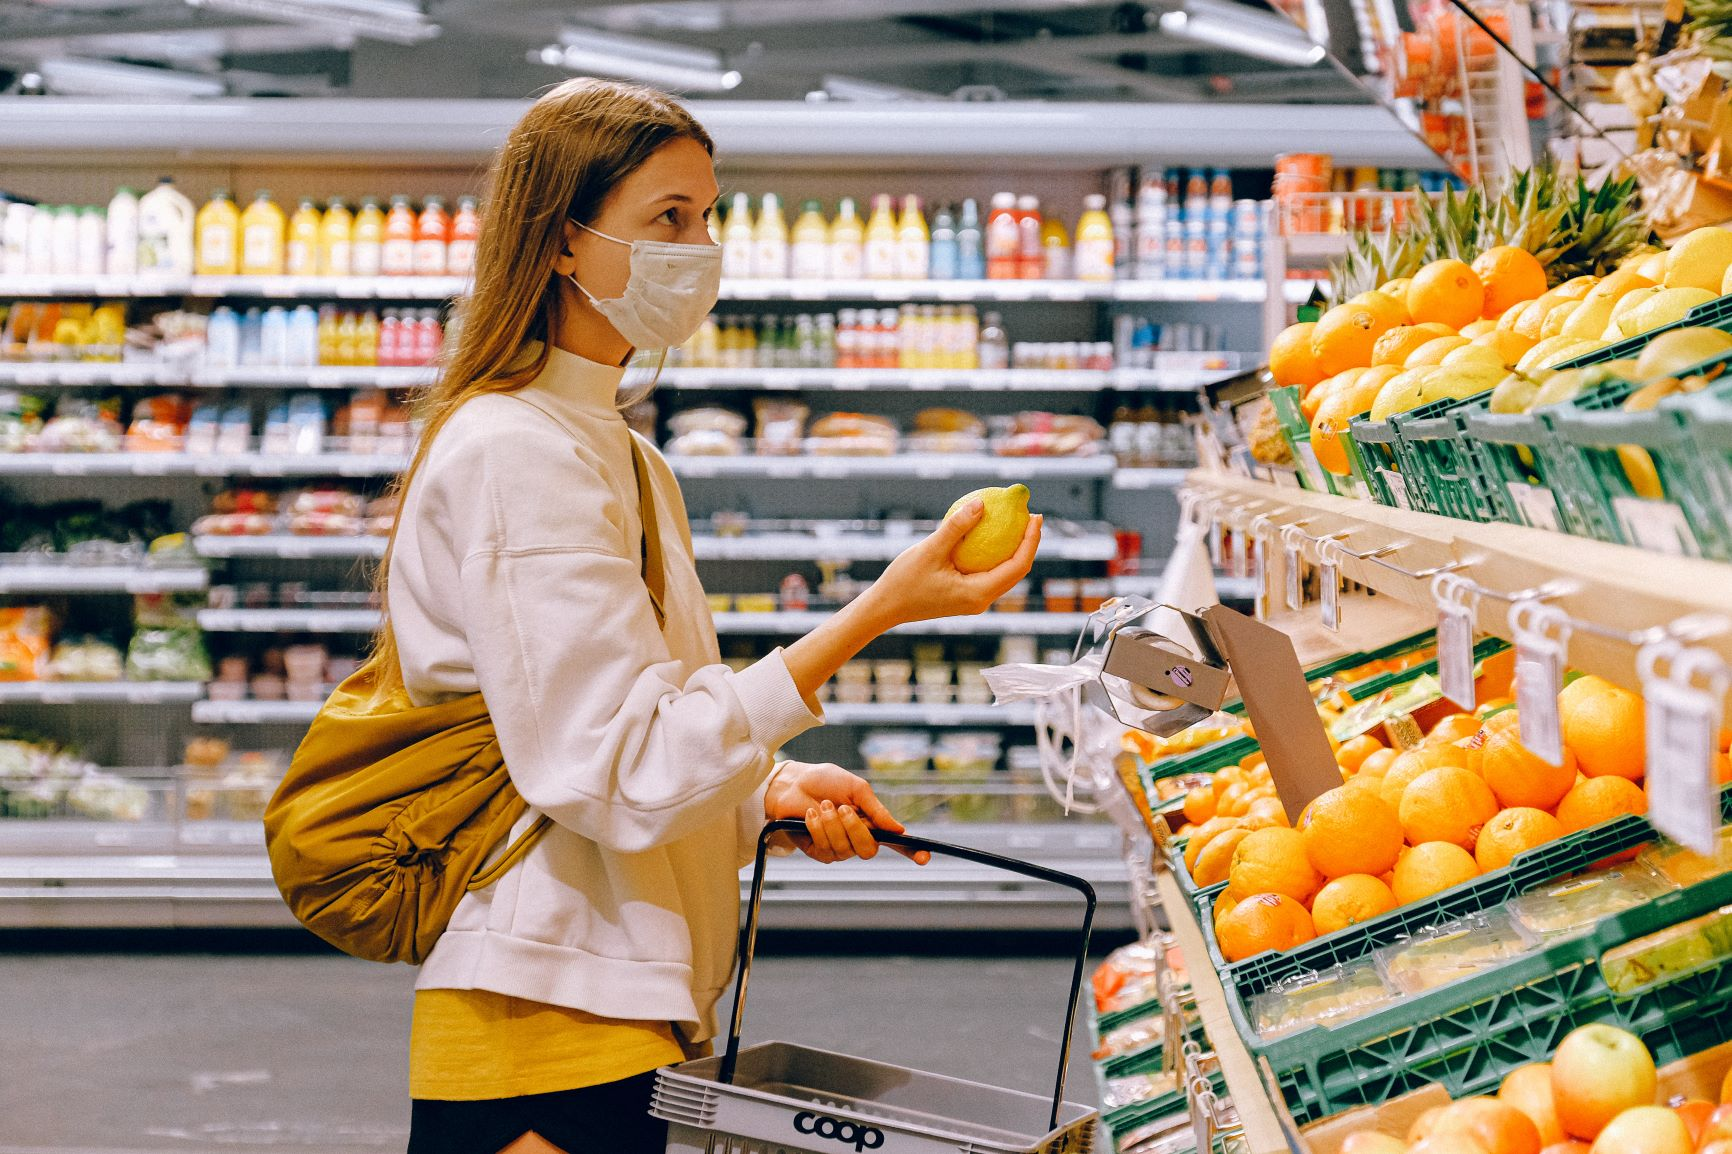 Coronavirus: How to stay safe when you go shopping